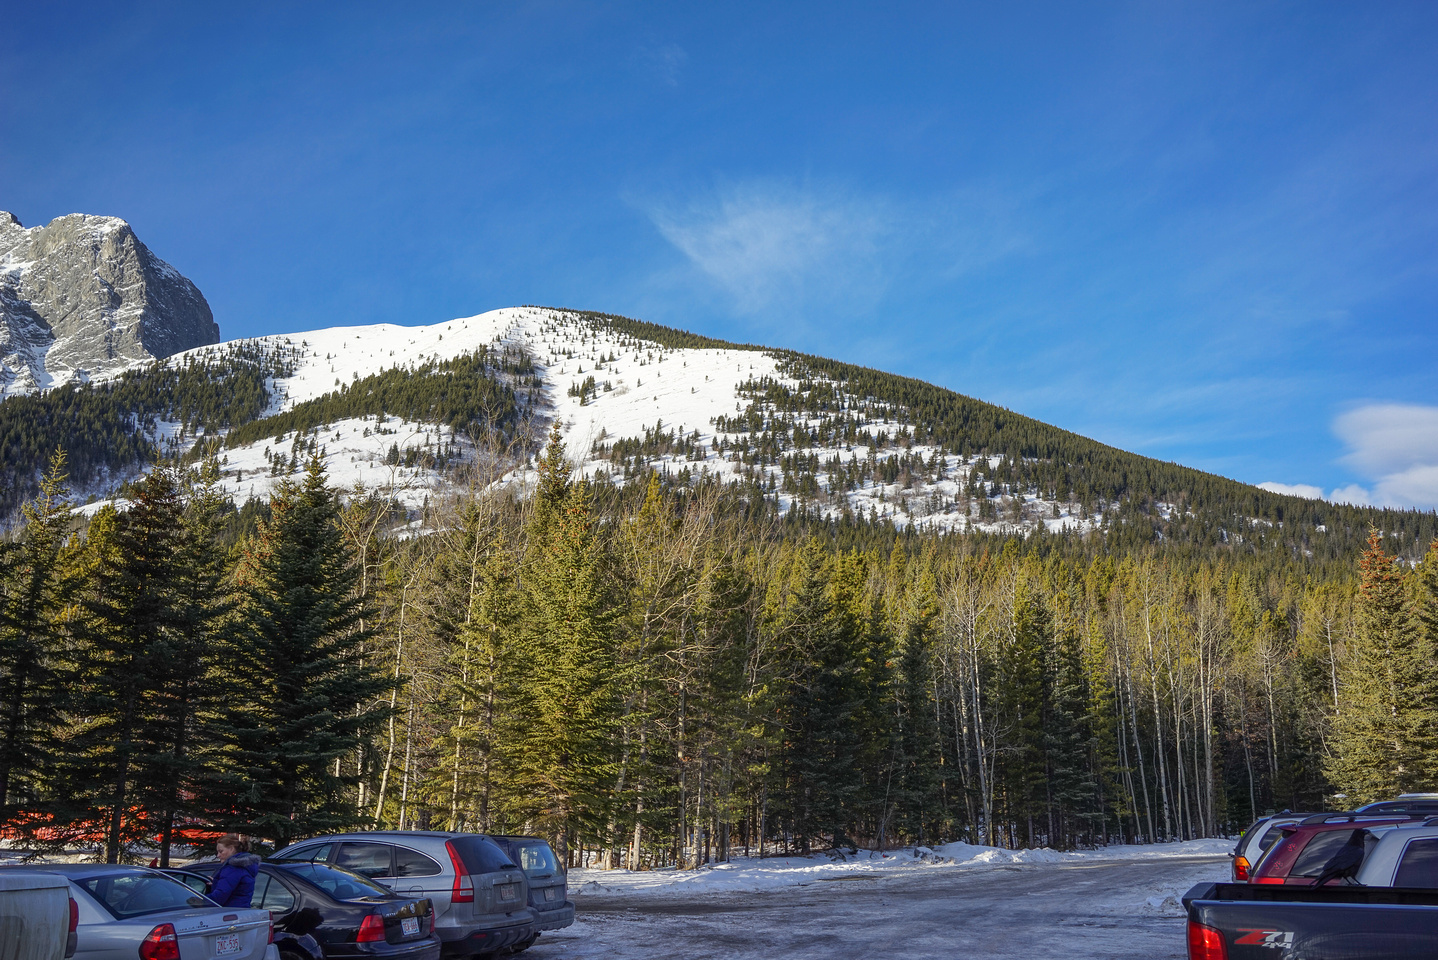 From the parking lot behind the Kananaskis Lodge, the north ridge looks easy and straight forward.